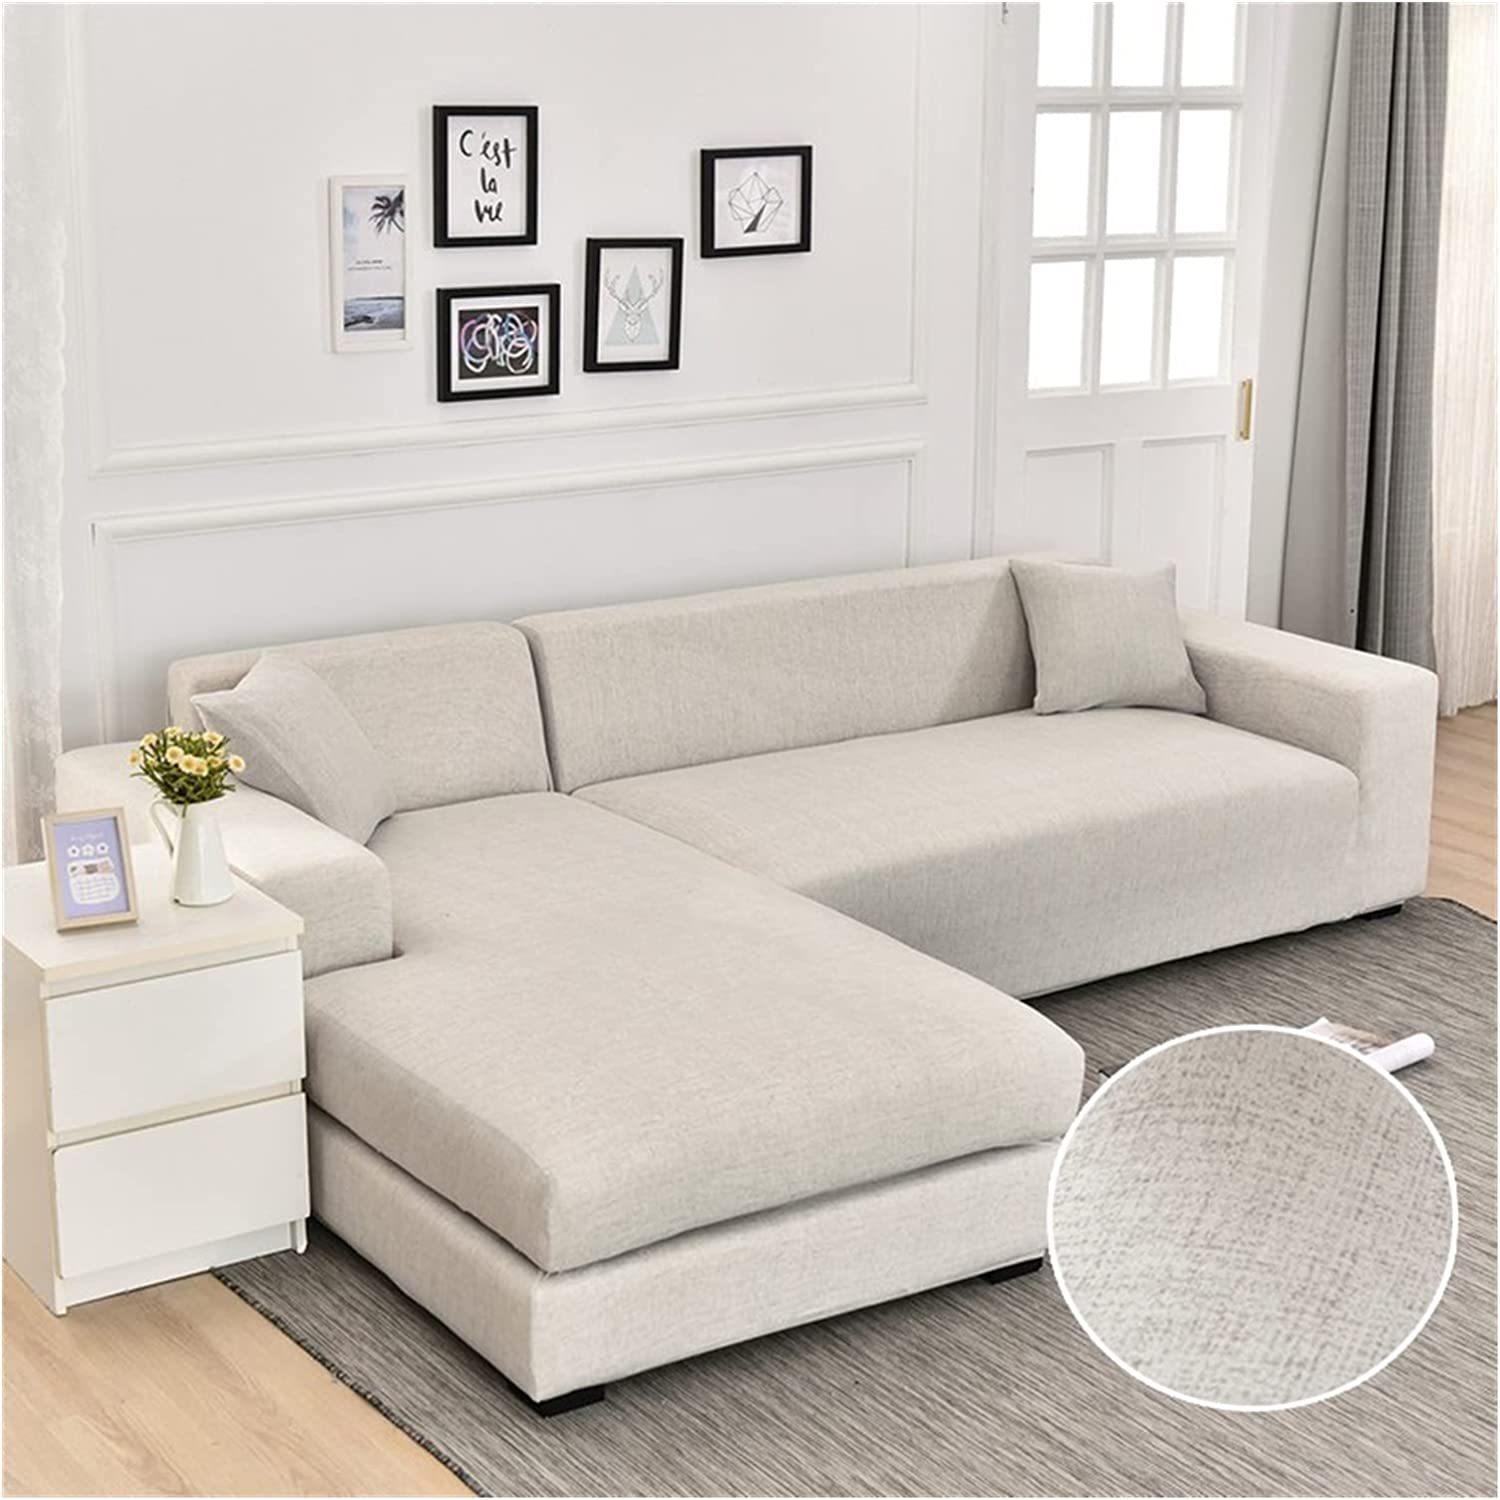 JDKJ Sofa Cover Geometric for Couch Price reduction Large discharge sale Liv Elastic